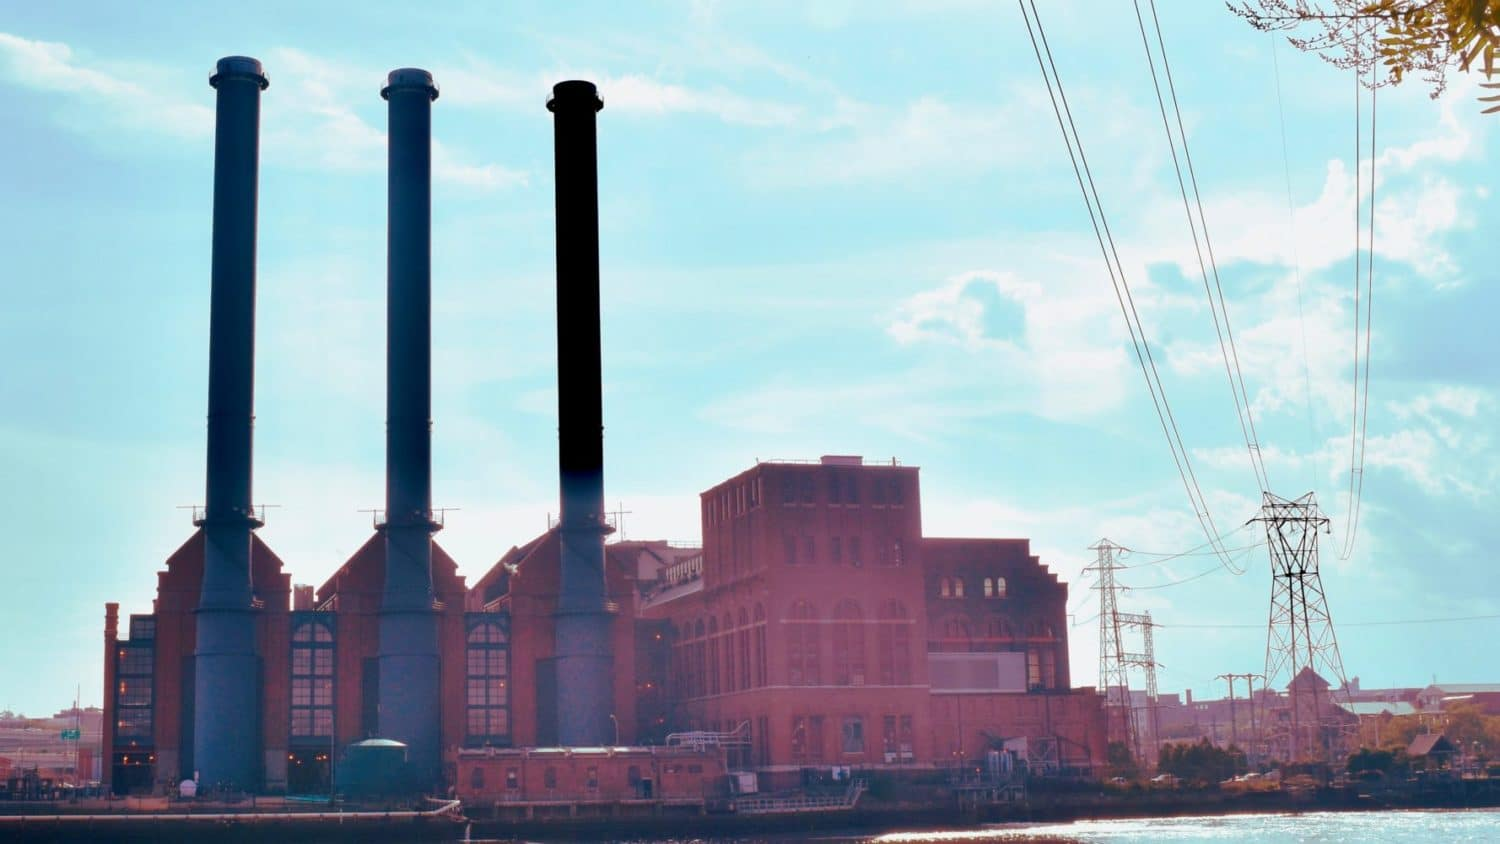 Photo for Report: Manchester Street Power Station for sale by owner